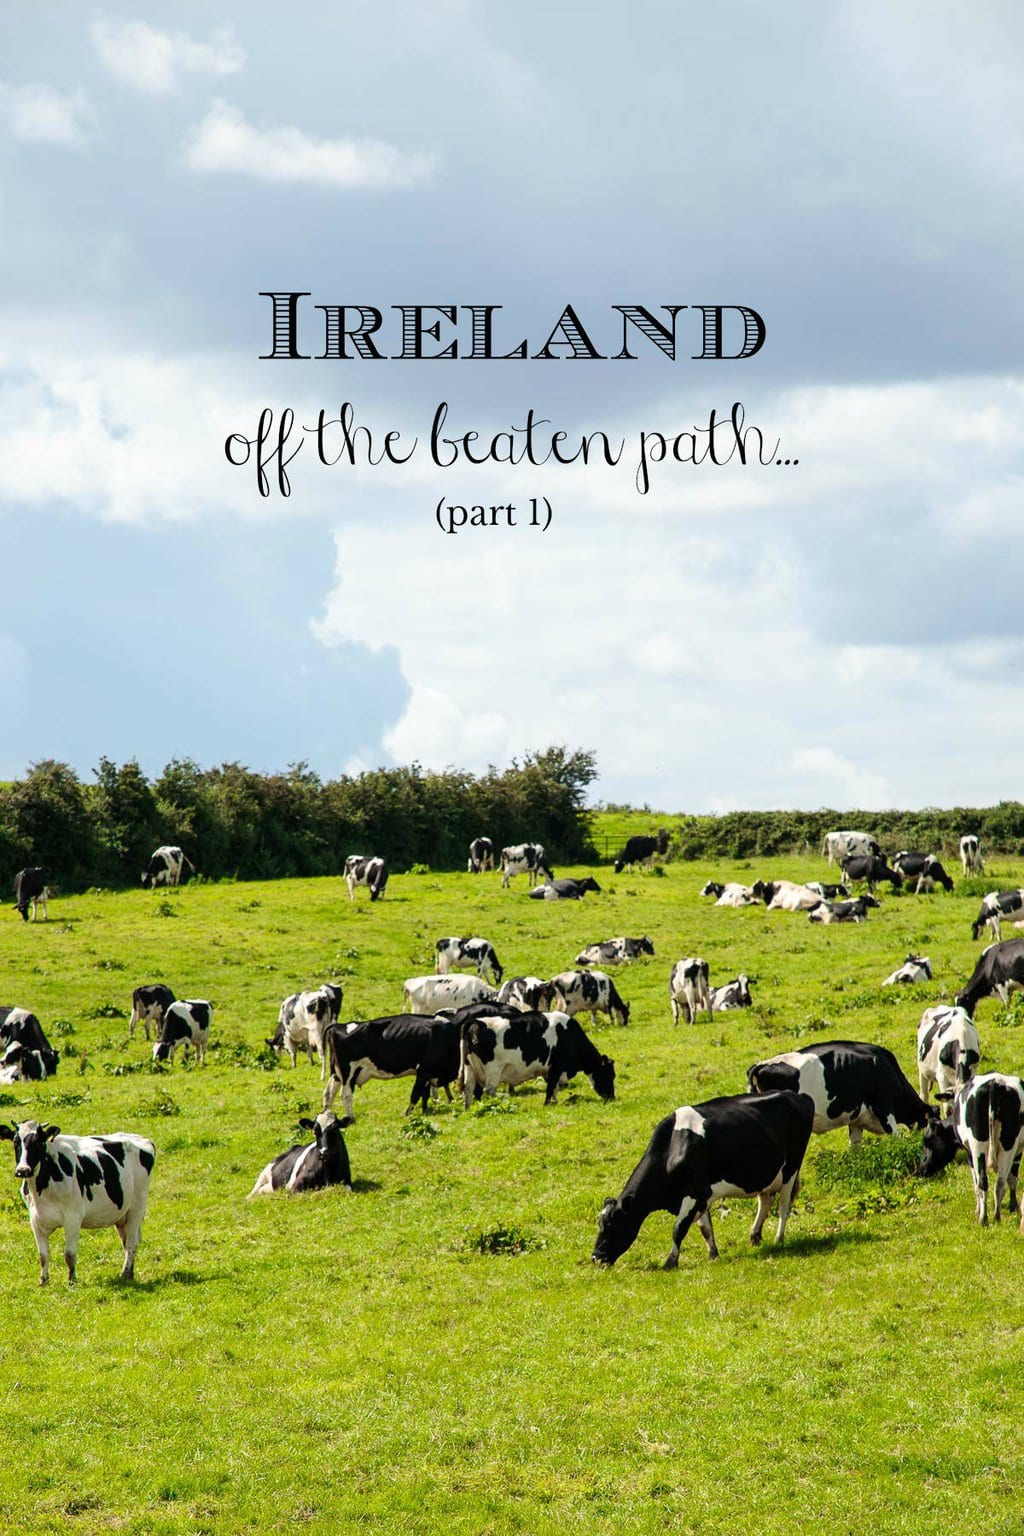 Highlights of a three week trip to Ireland; not all the quintessential tourist destinations, but fun, fascinating, beautiful beyond description. Come join us, The Café in Ireland, Off the Beaten Path! #ireland, #irelandtravel, #travelinireland, #irelandoffthebeatenpath